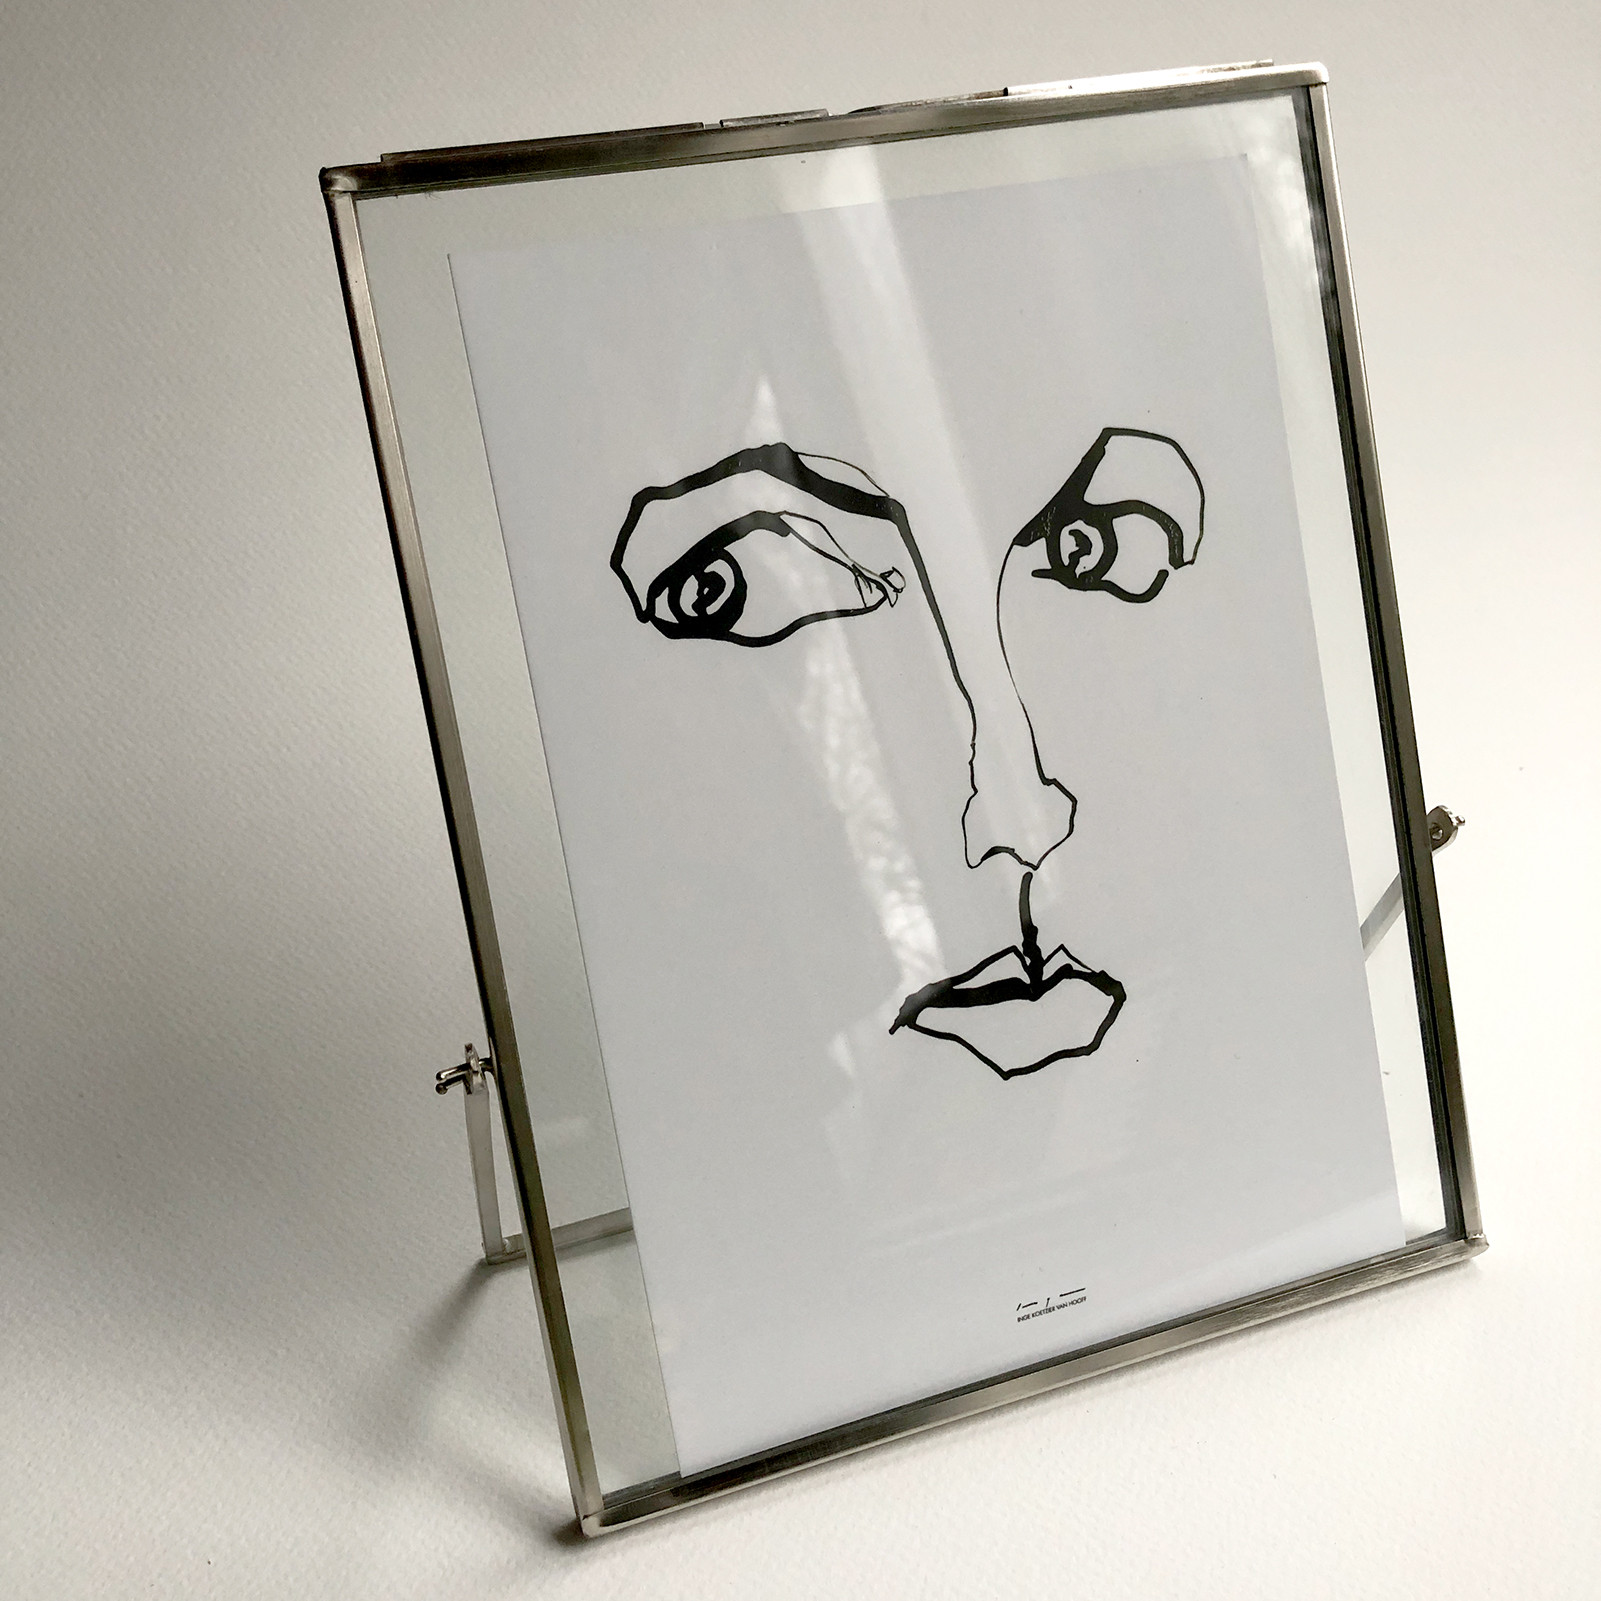 Example | Frame NOT included in gift set